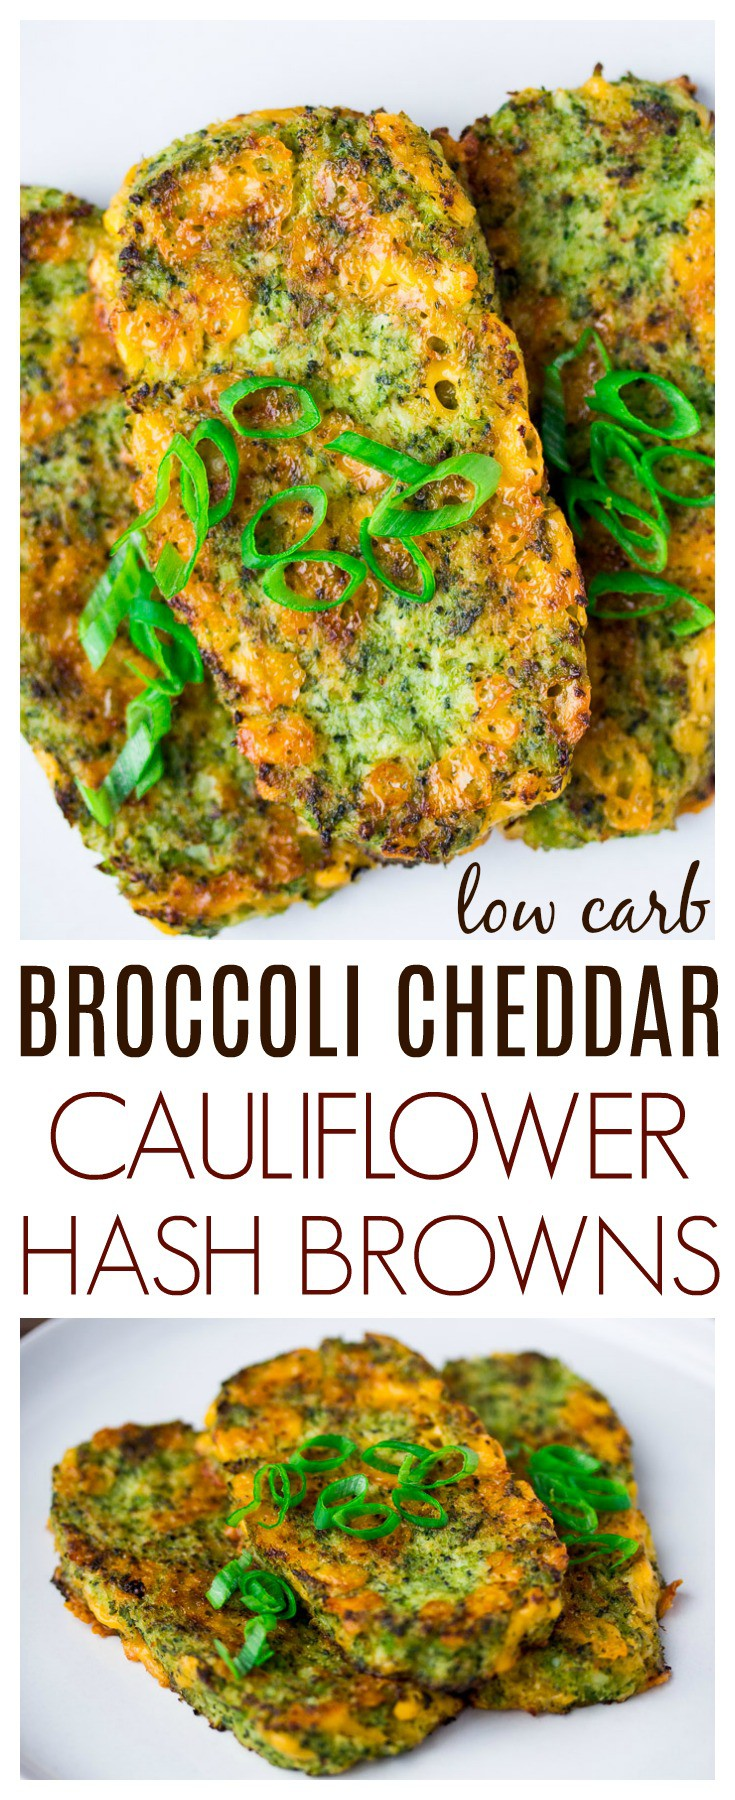 Broccoli Cheddar Cauliflower Hash Browns are a delicious, low carb side that's perfect alongside eggs and bacon! | keto | breakfast recipe | brunch recipe | #lowcarb #keto #cauliflowerhashbrowns #dlbrecipes #breakfastrecipe